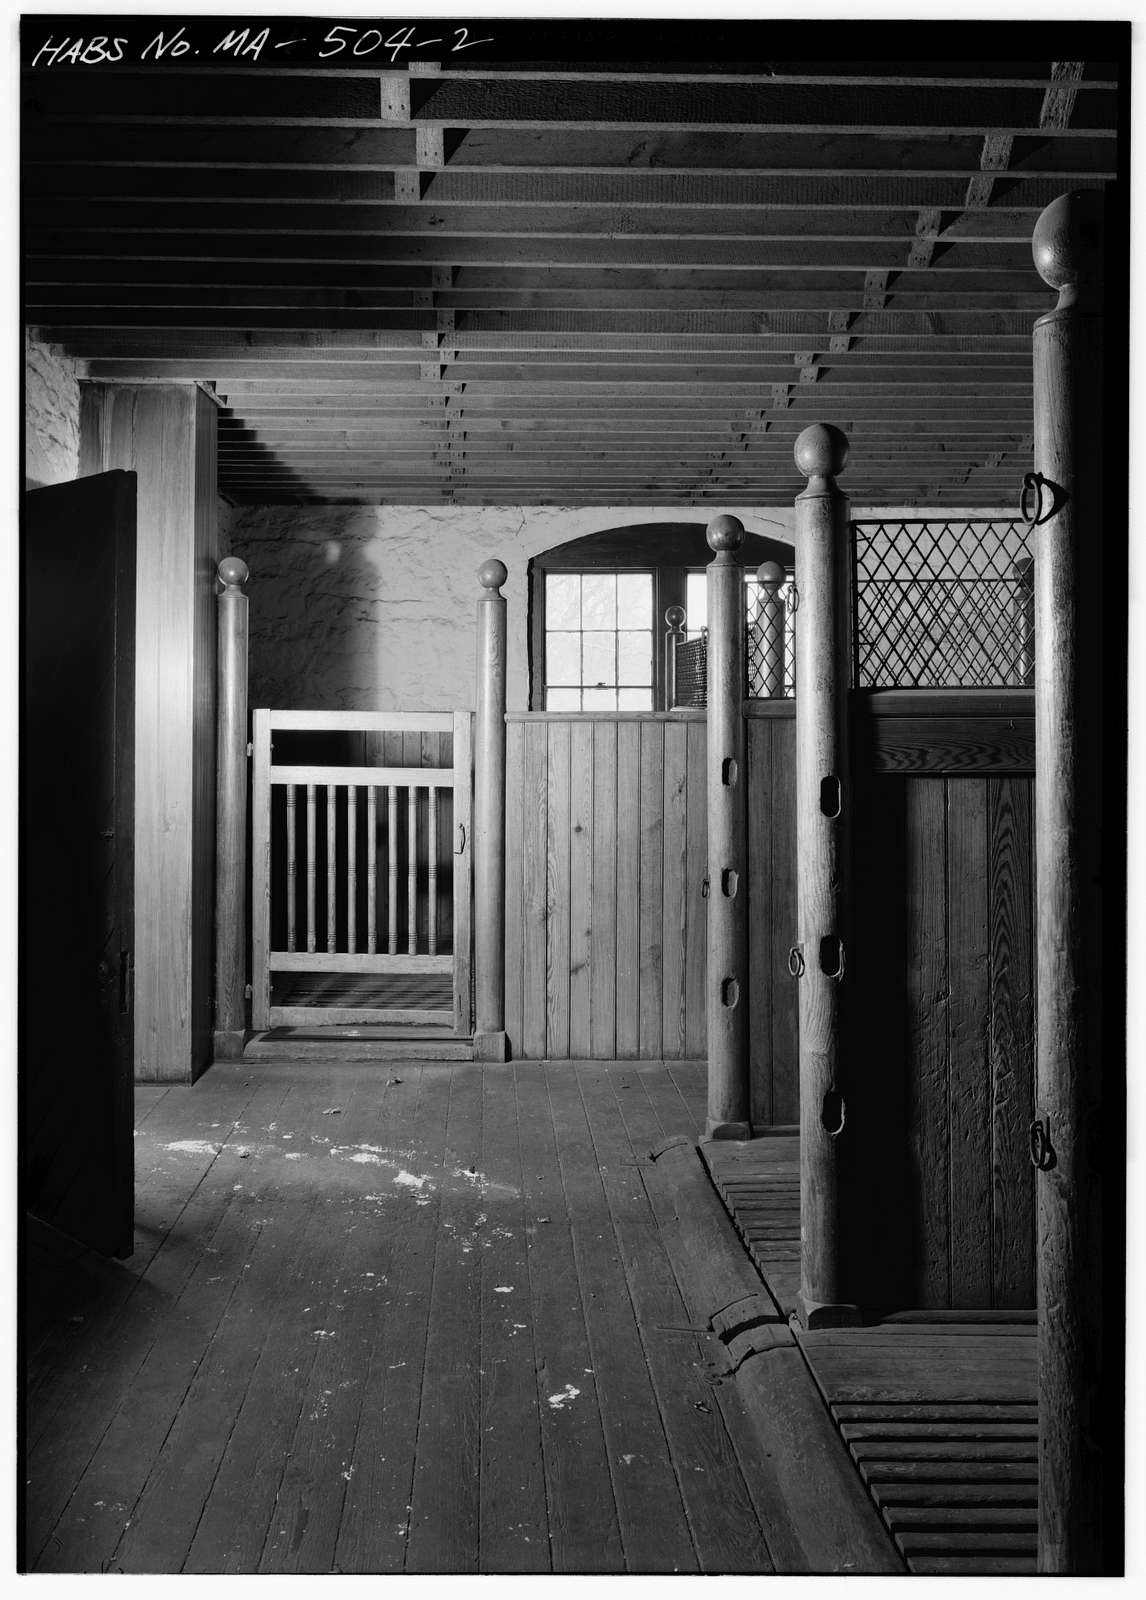 Adams Mansion, Carriagehouse-Stable, 135 Adams Street, Quincy, Norfolk County, MA